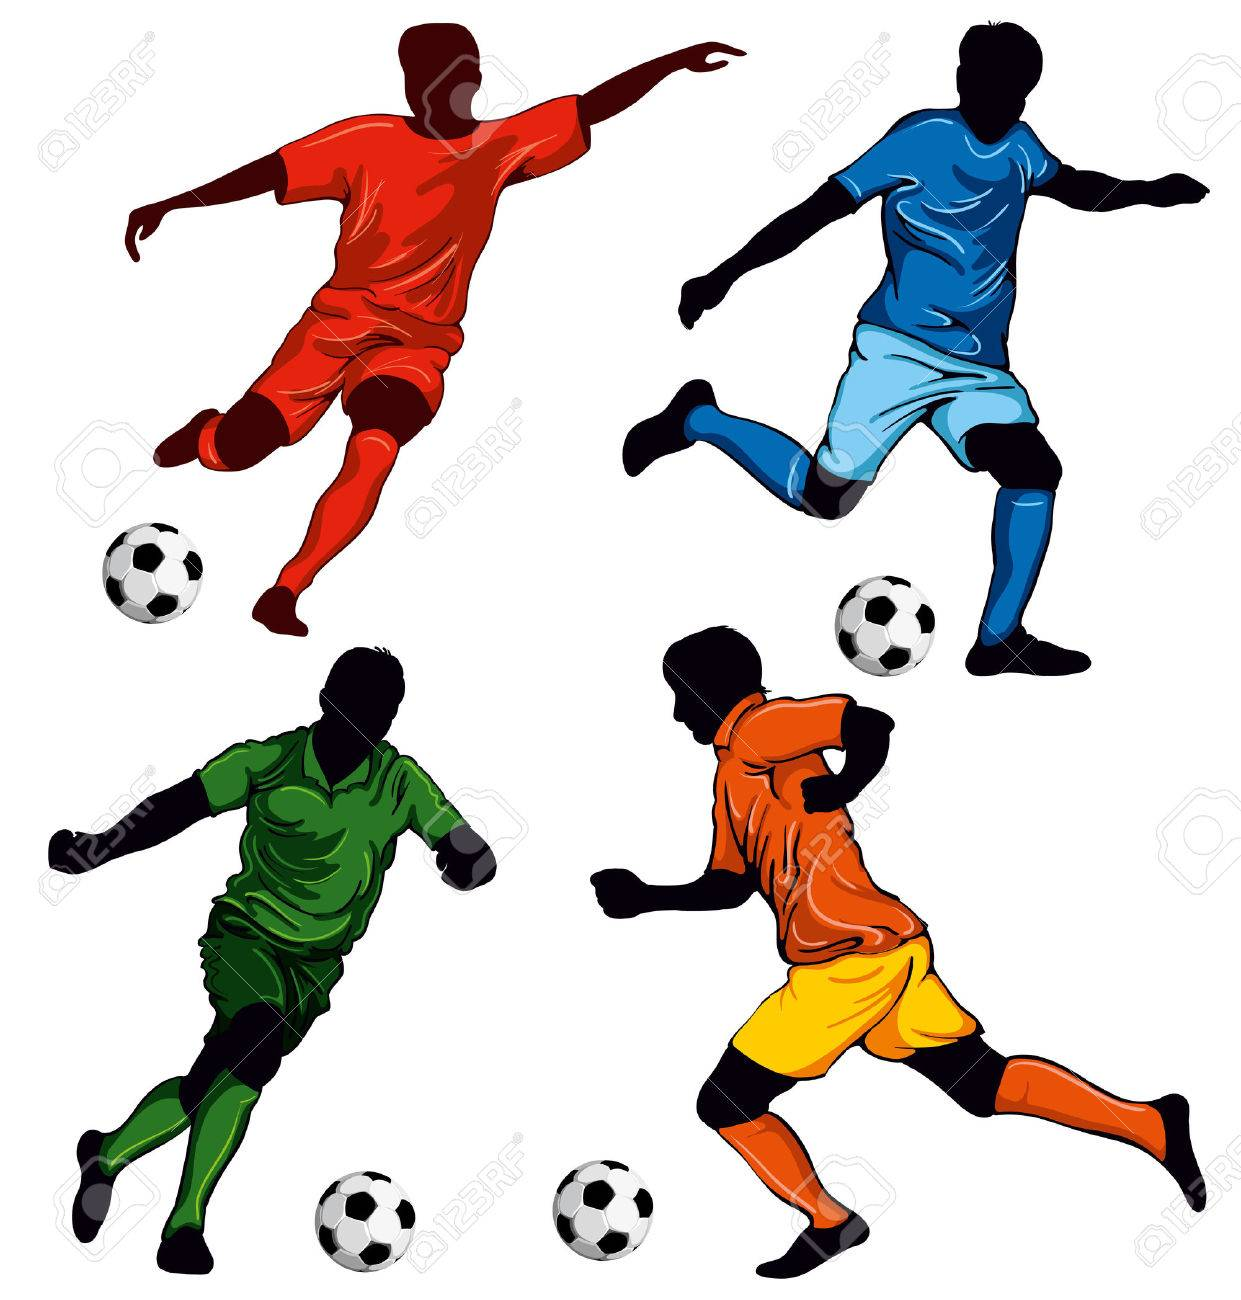 Set of four soccer players in different poses. Beautiful items for your design. - 55003477